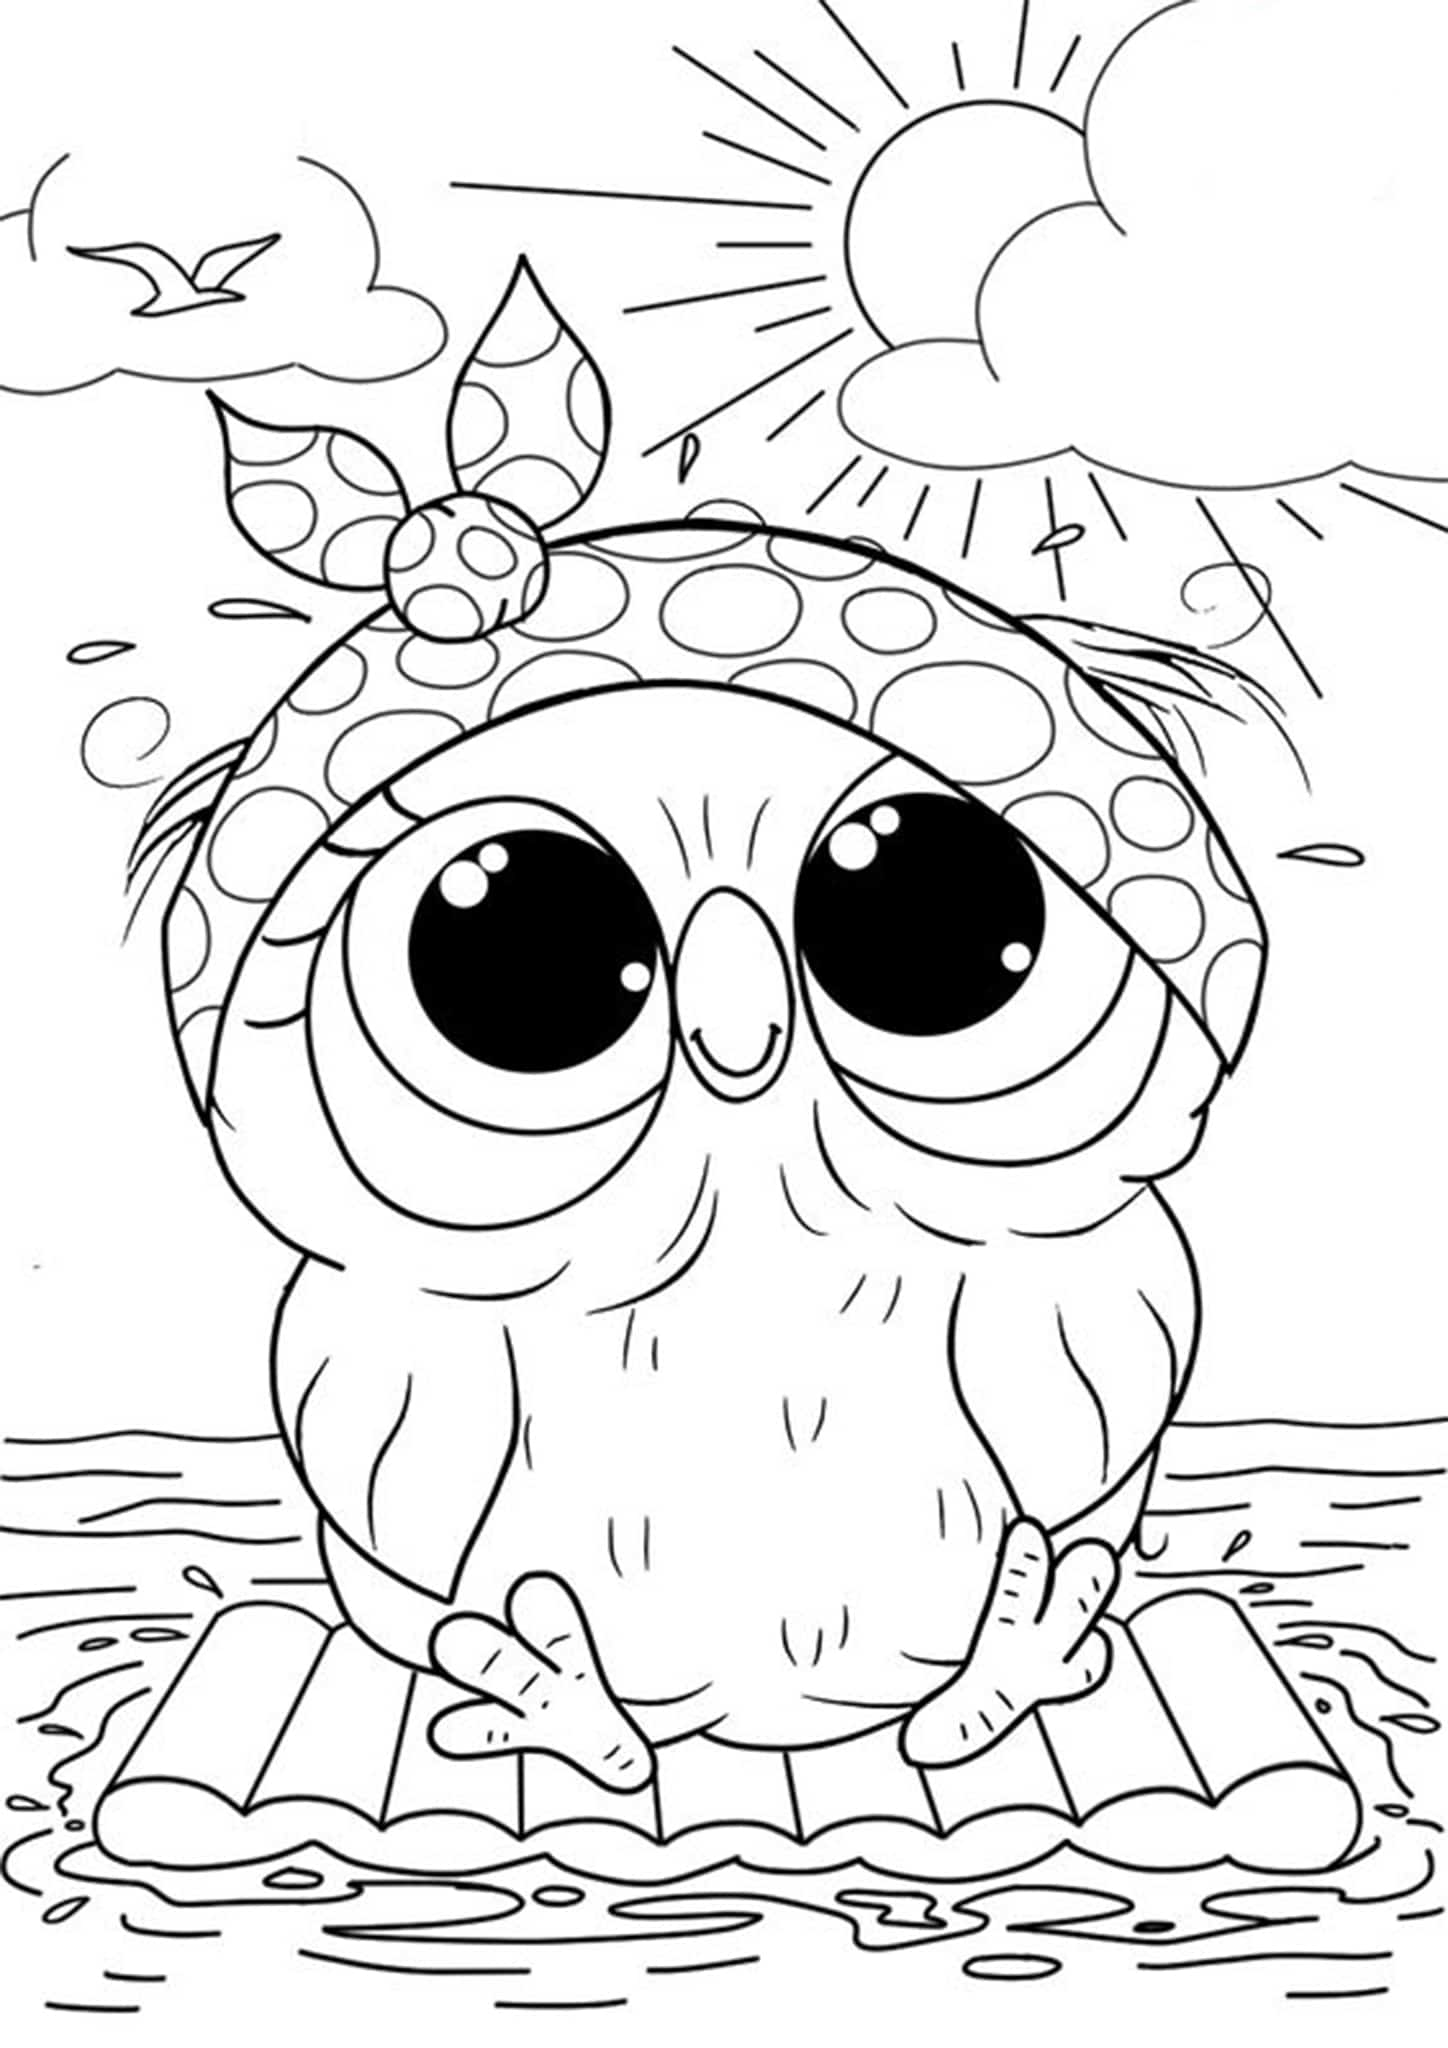 coloring free printable kids mouse to print mouse kids coloring pages kids printable coloring free